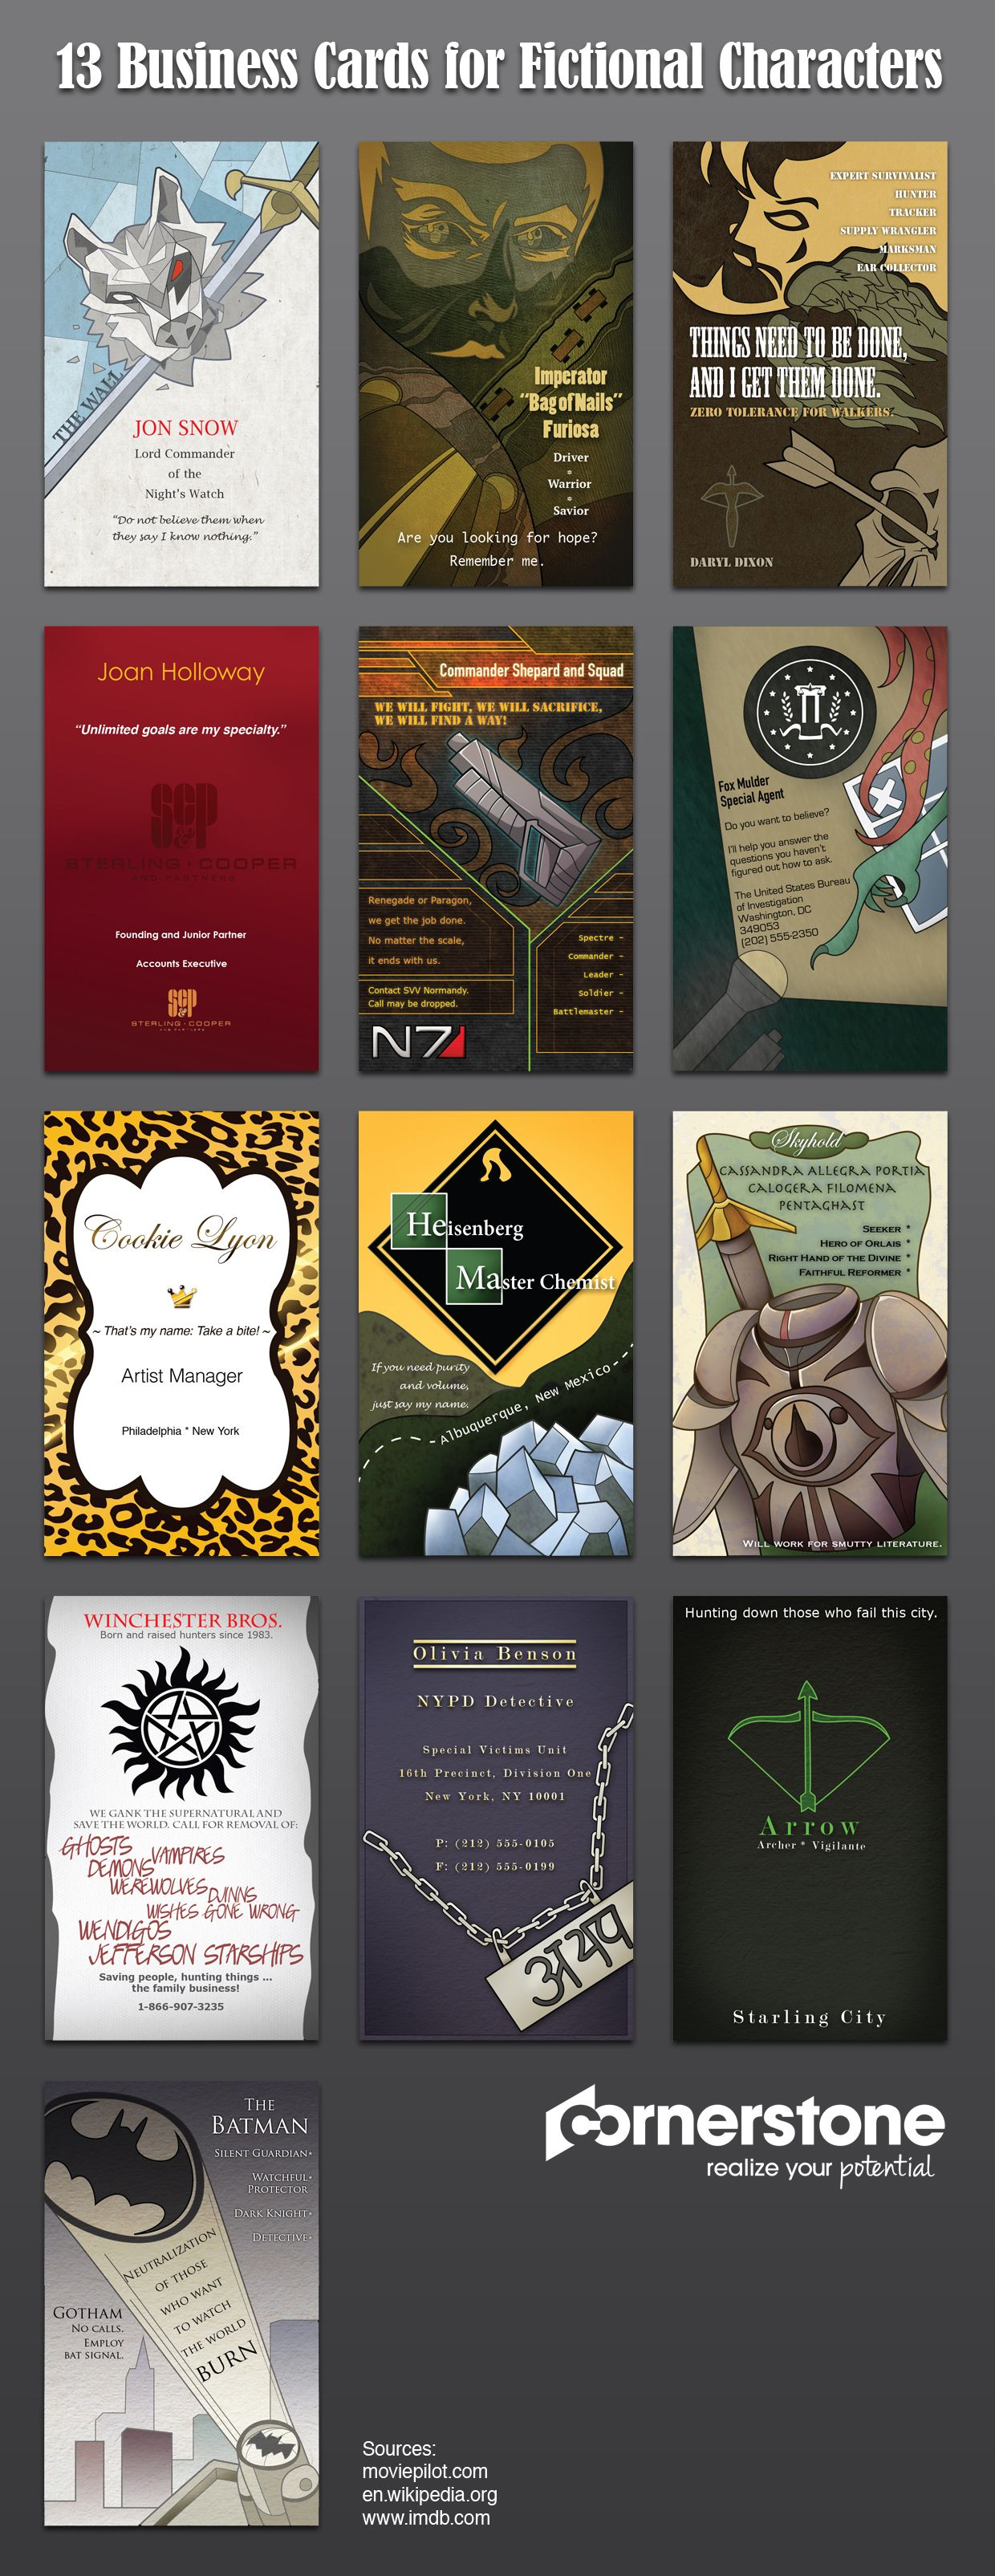 13 Business Cards for Fictional Characters #infographic